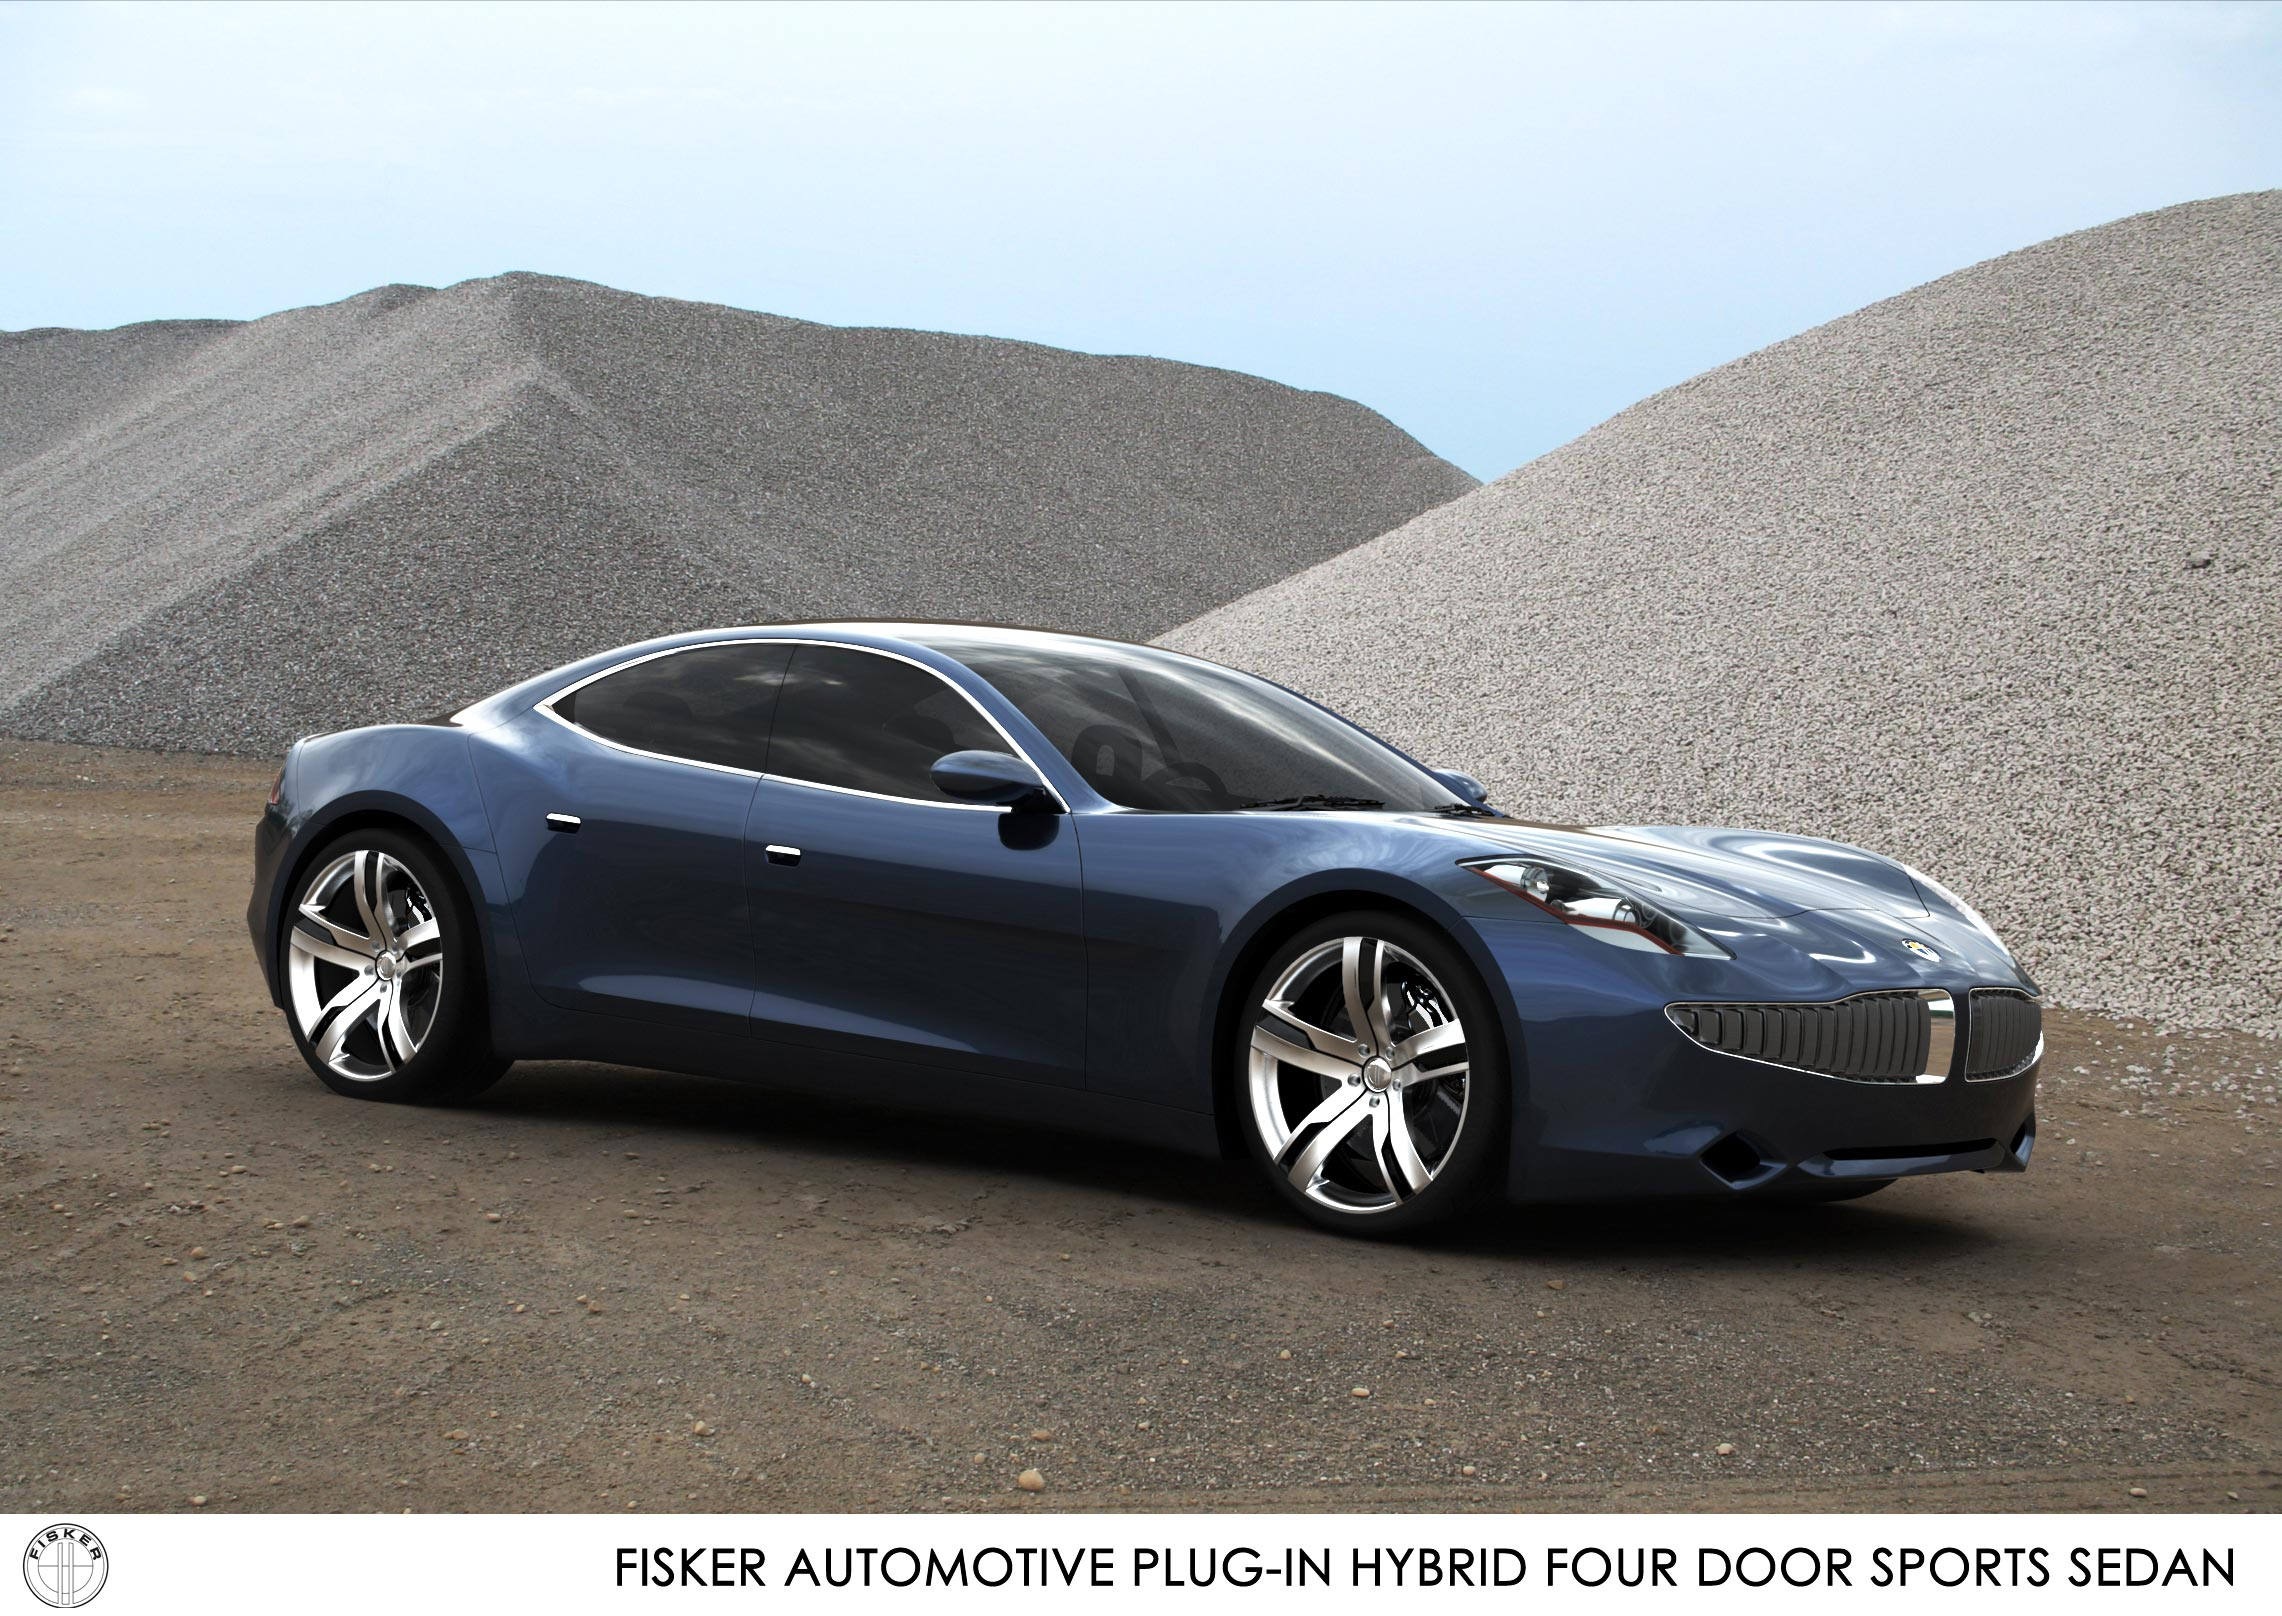 fisker hybride 4 deurs sport sedan 3d rendering. Black Bedroom Furniture Sets. Home Design Ideas